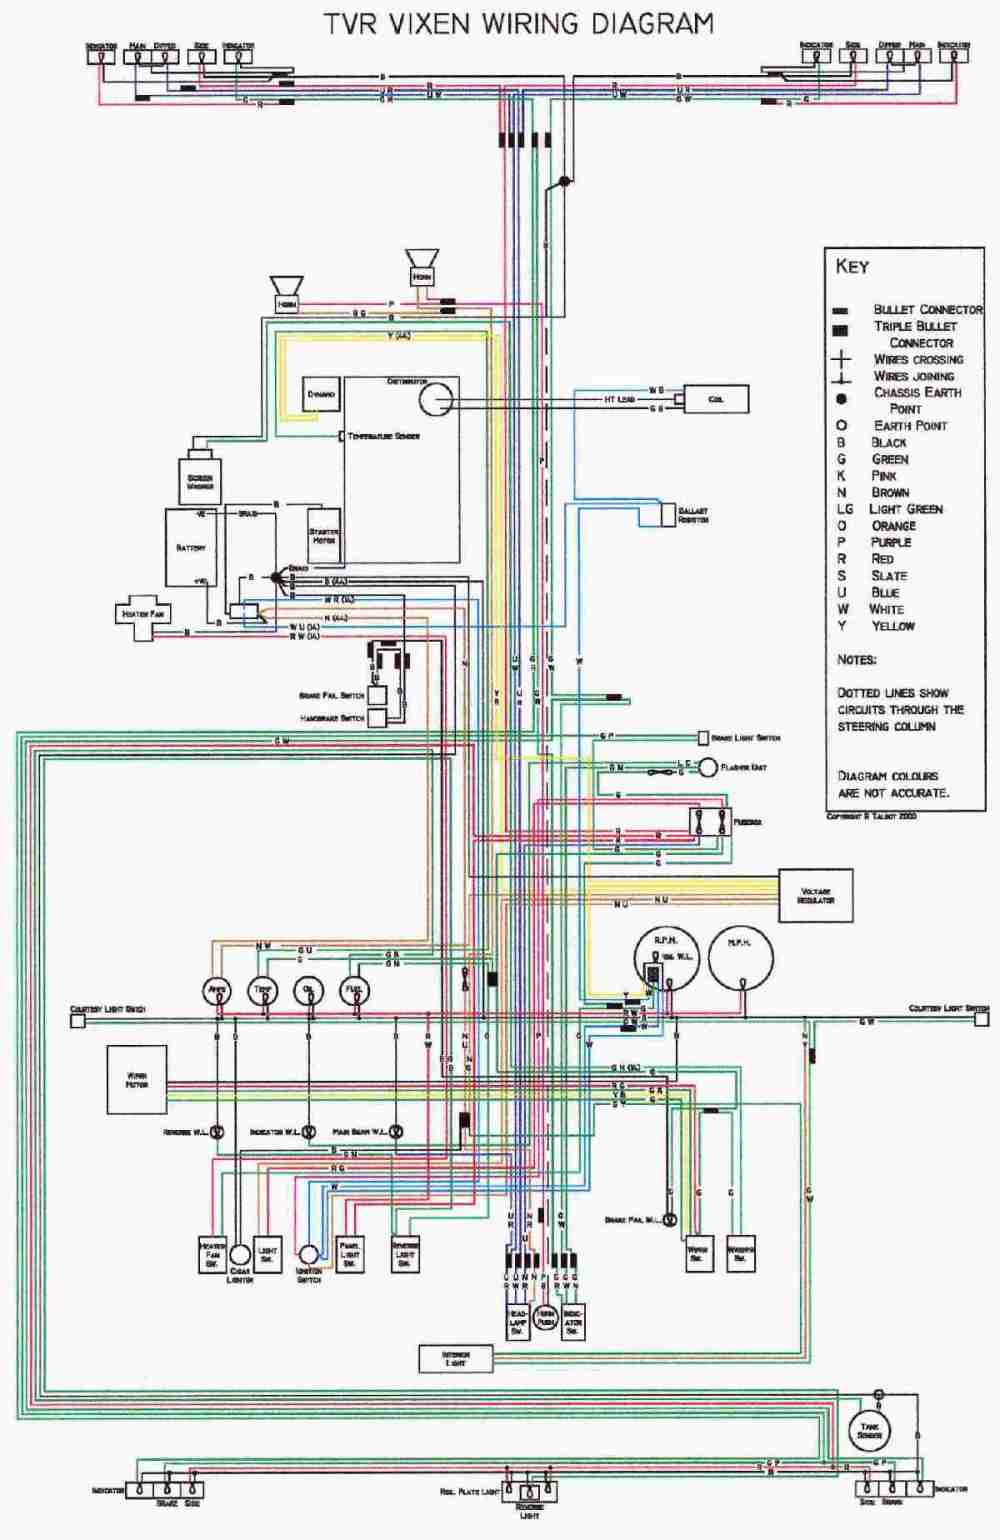 medium resolution of suzuki alto electrical wiring diagram my wiring diagram maruti suzuki alto electrical wiring diagram suzuki alto electrical wiring diagram